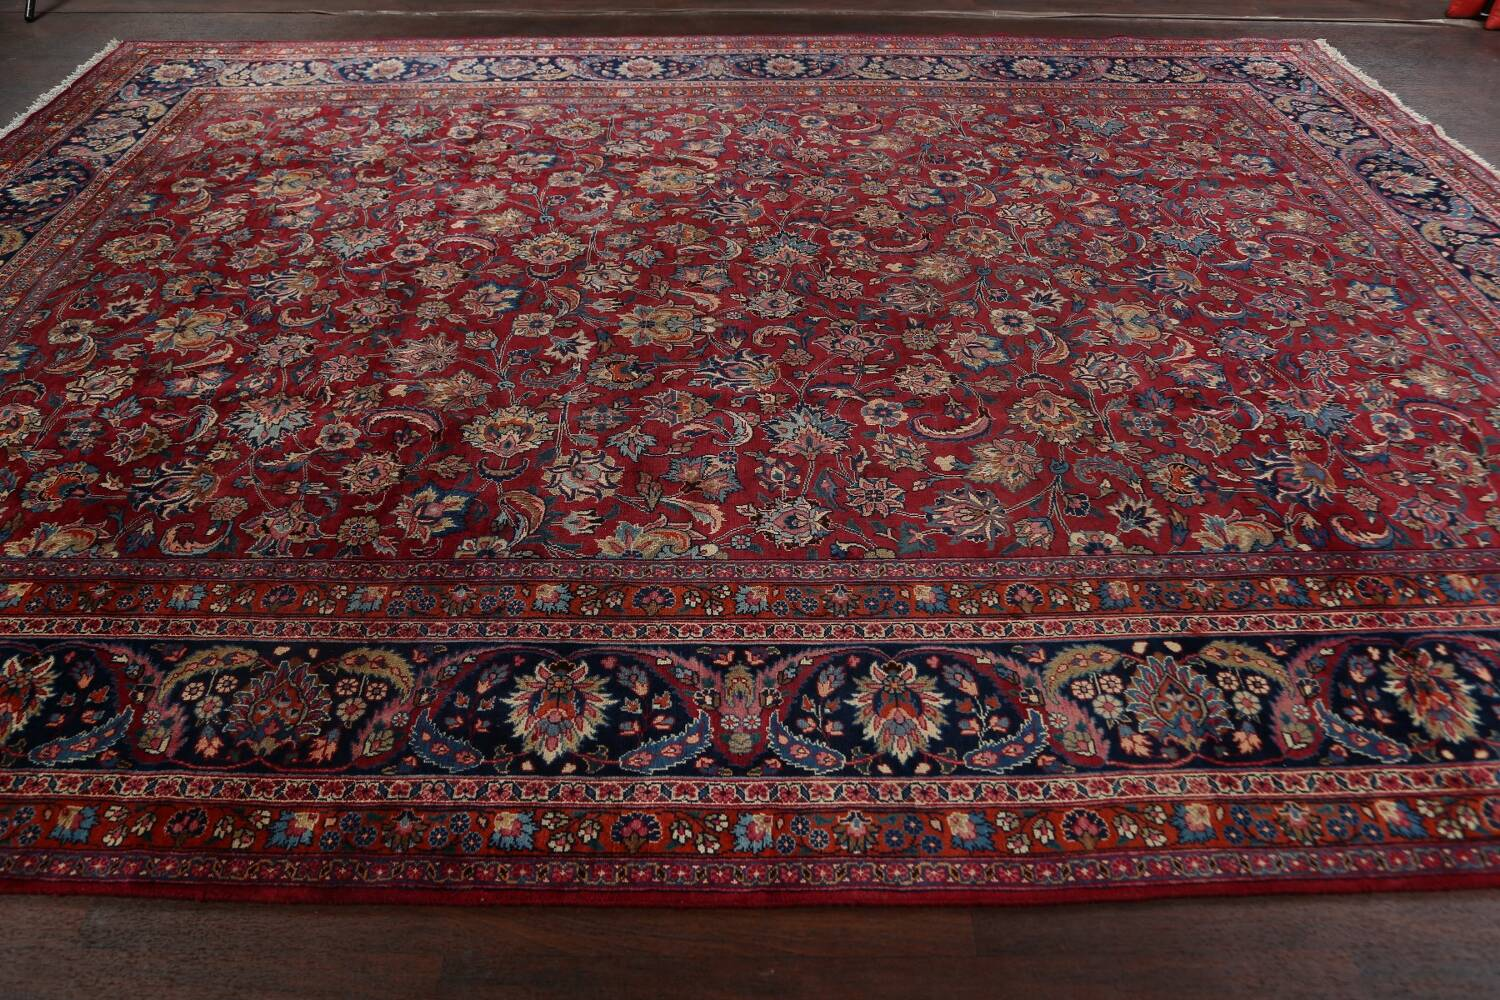 Antique Floral Vegetable Dye Mashad Persian Area Rug 10x13 image 18